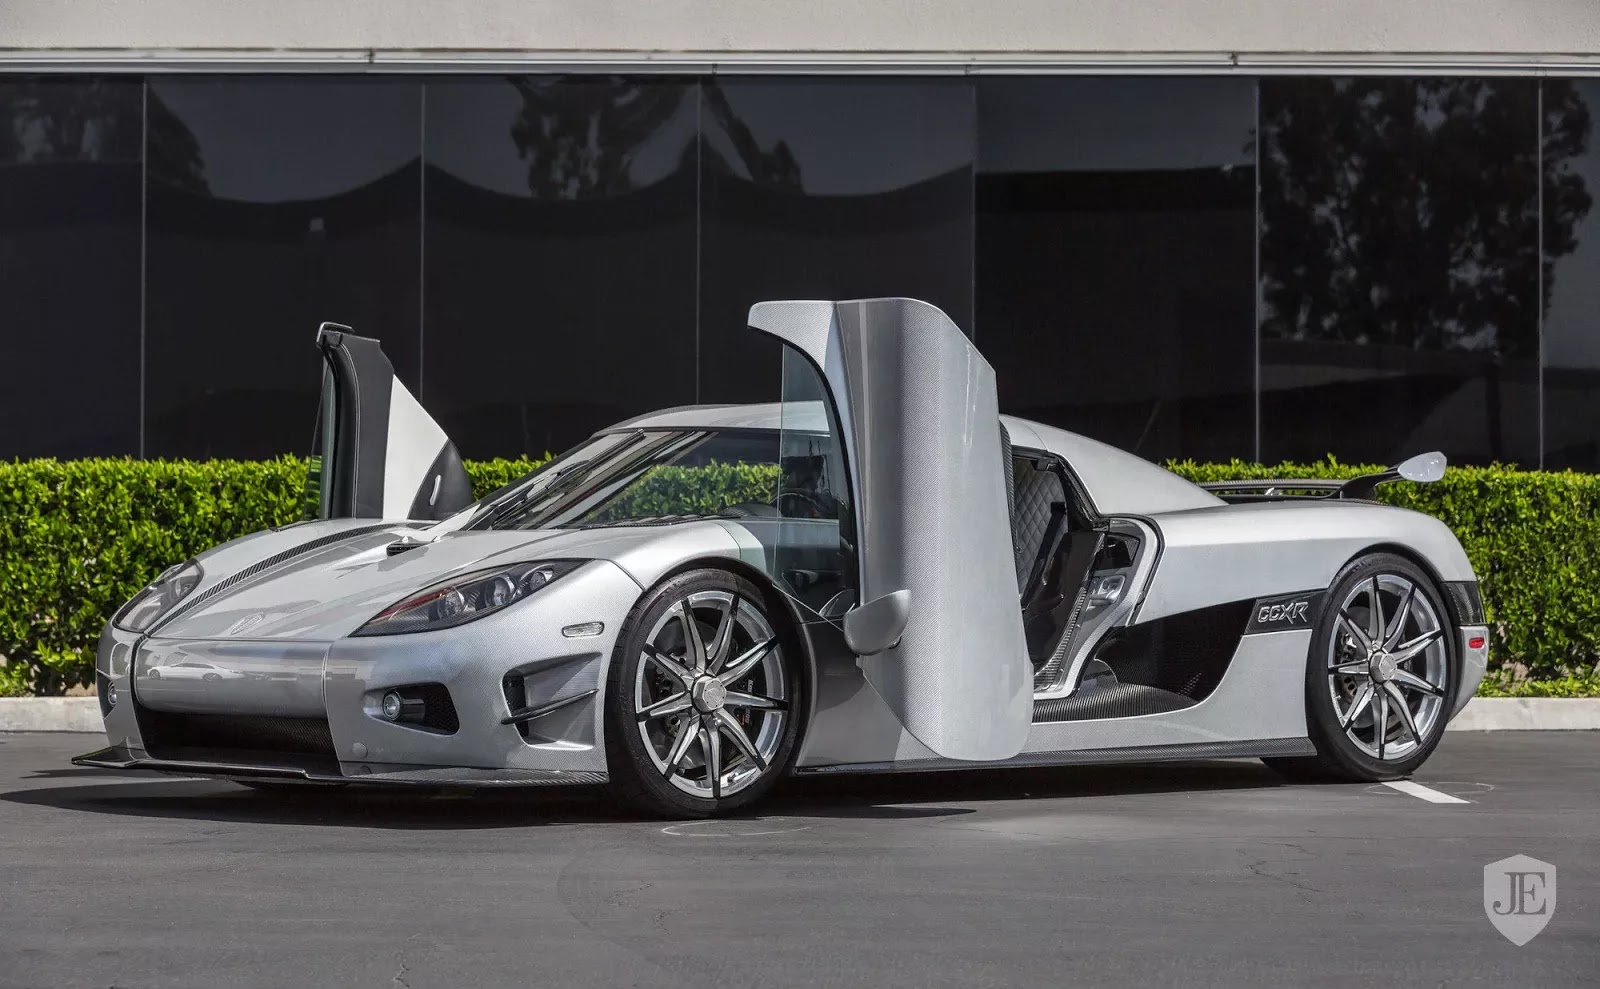 Koenigsegg Ccxr Trevita >> Koenigsegg CCXR Trevita Owned By Mayweather Up For Sale Again